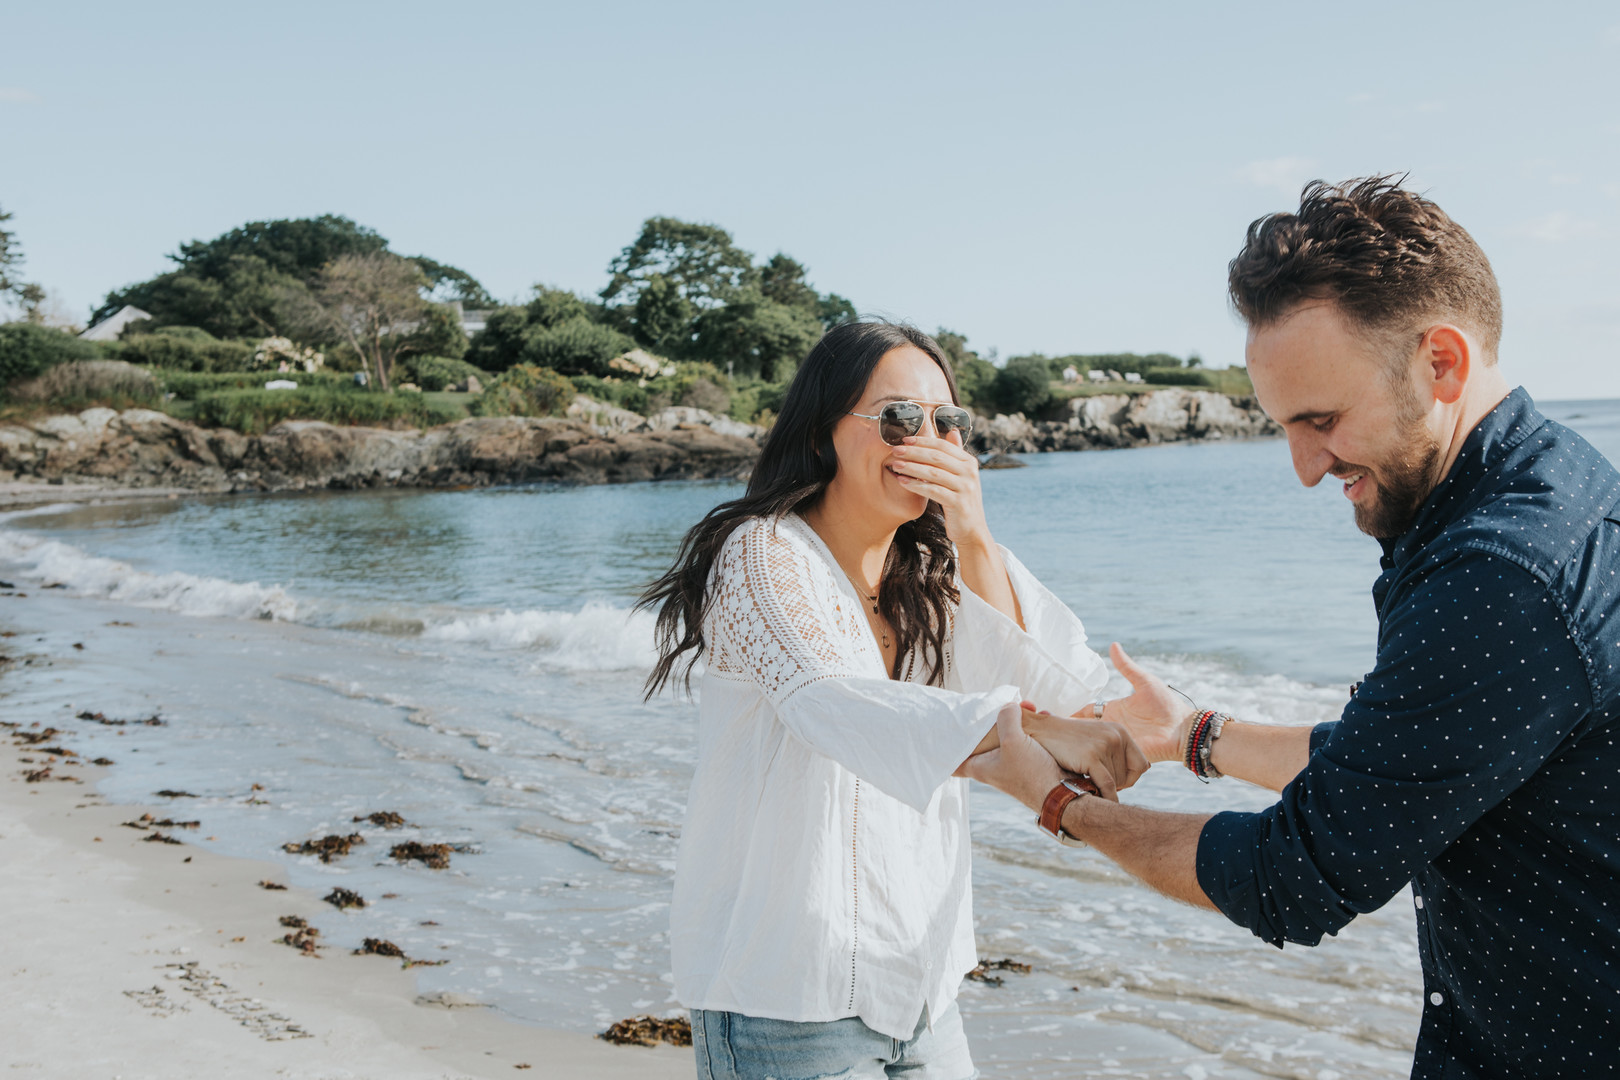 Engagement Proposal Ideas in Kennebunkport, Maine